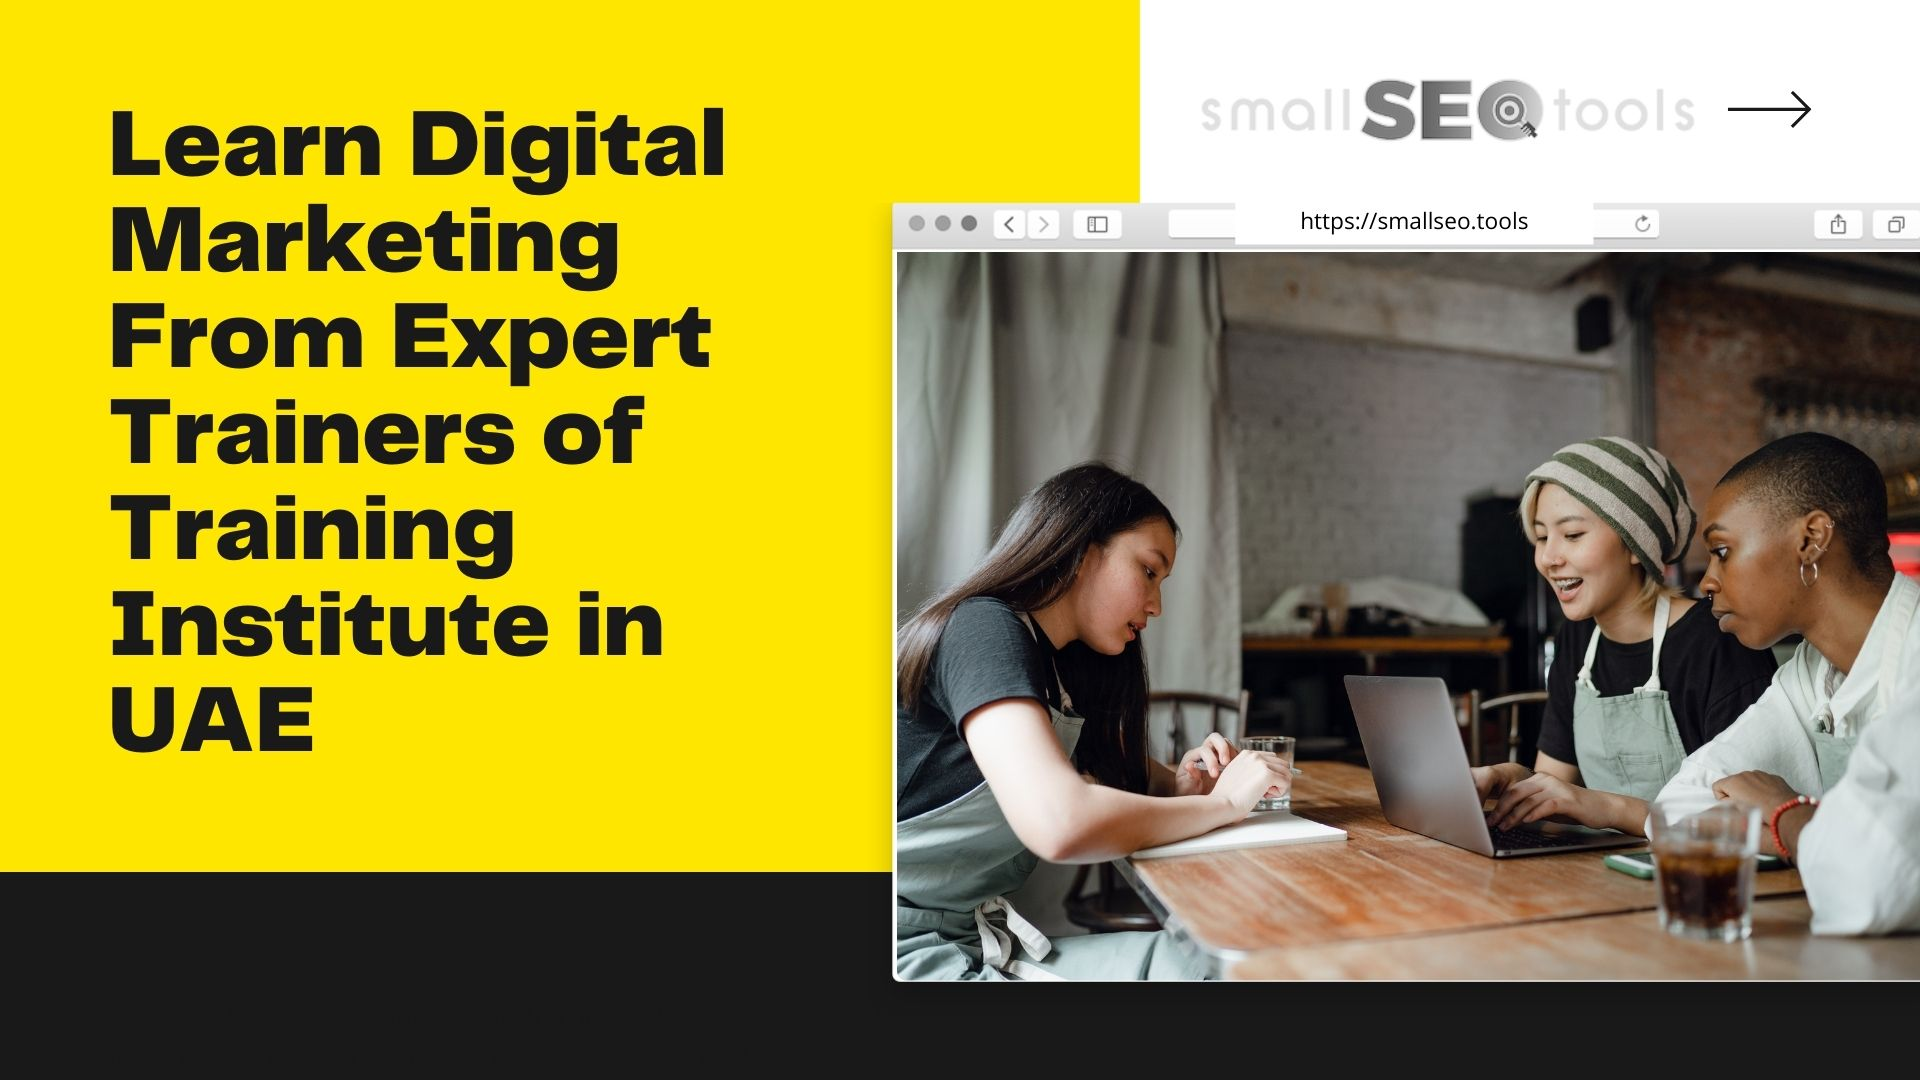 Learn Digital Marketing From Expert Trainers of Training Institute in UAE